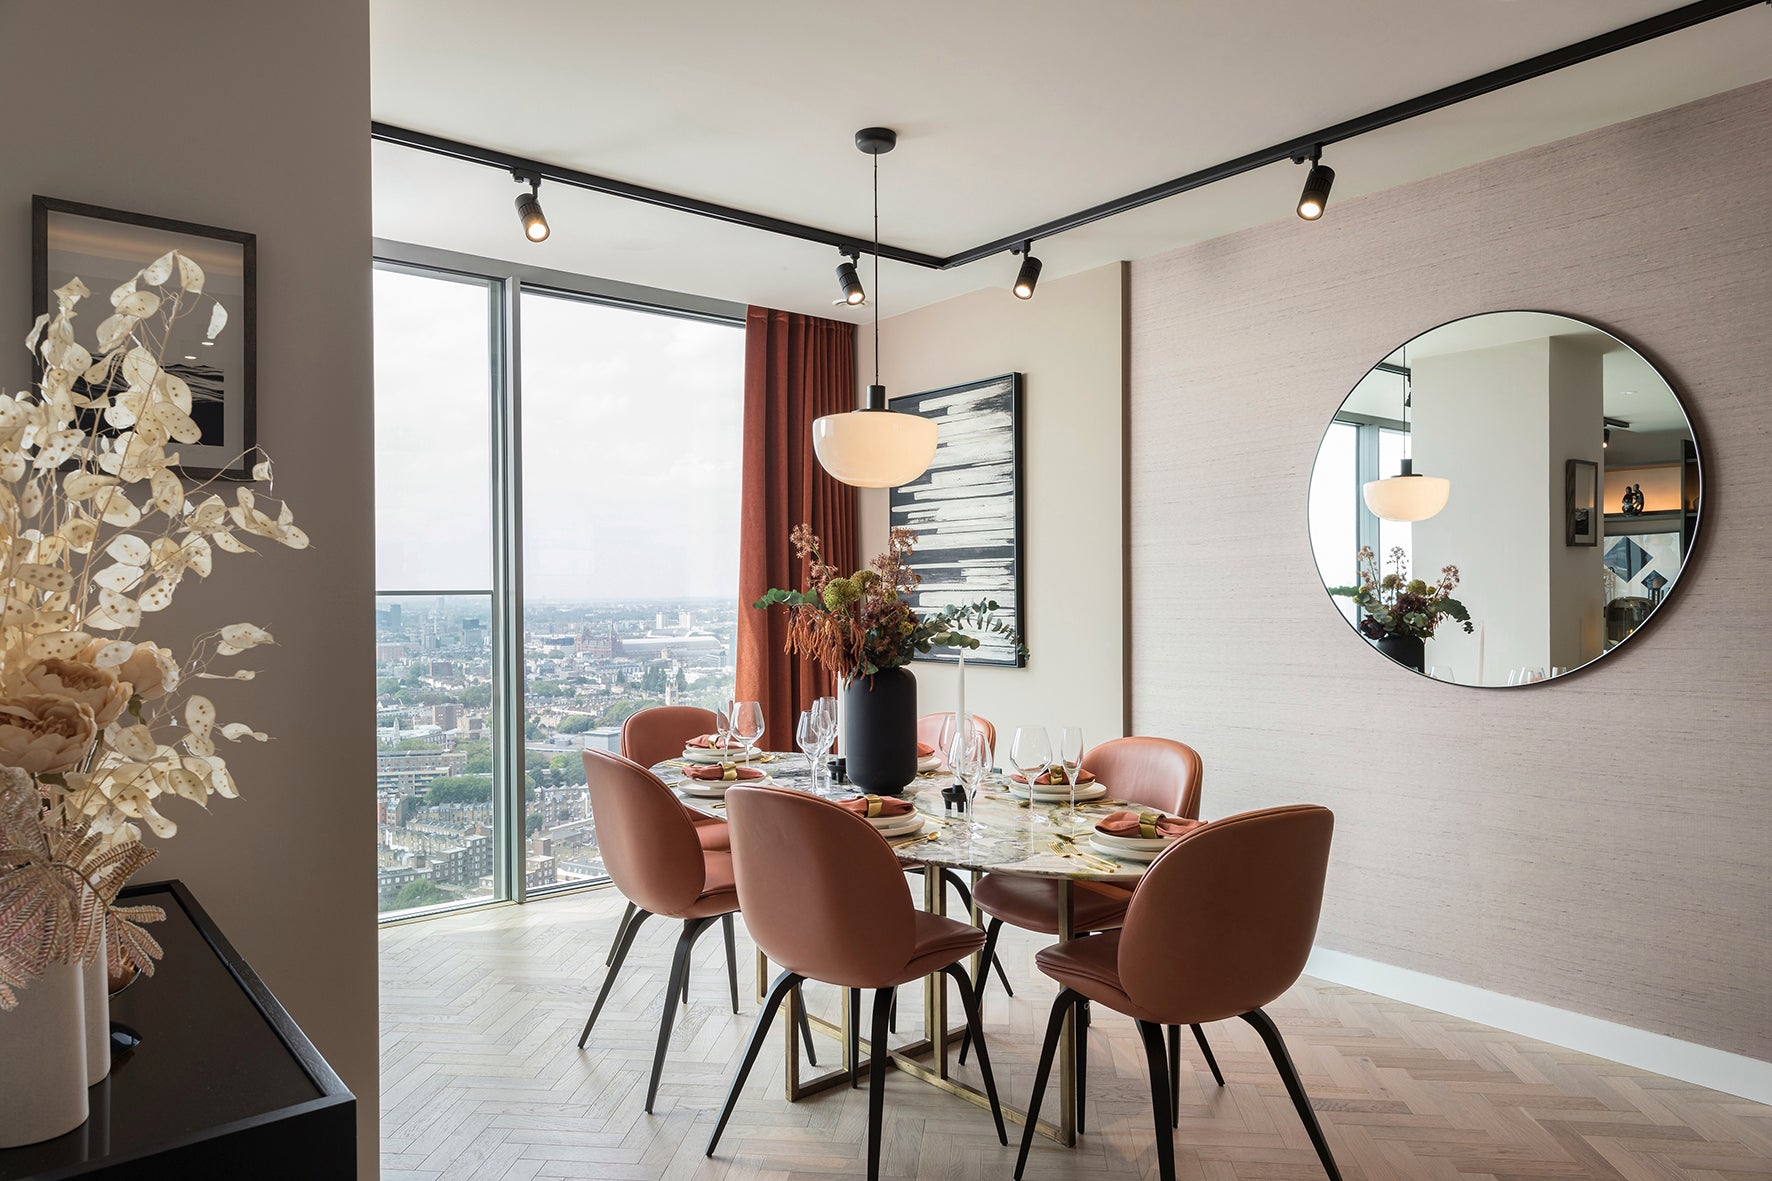 The dining area, luxury apartment 250 City Road, London Valencia Tower